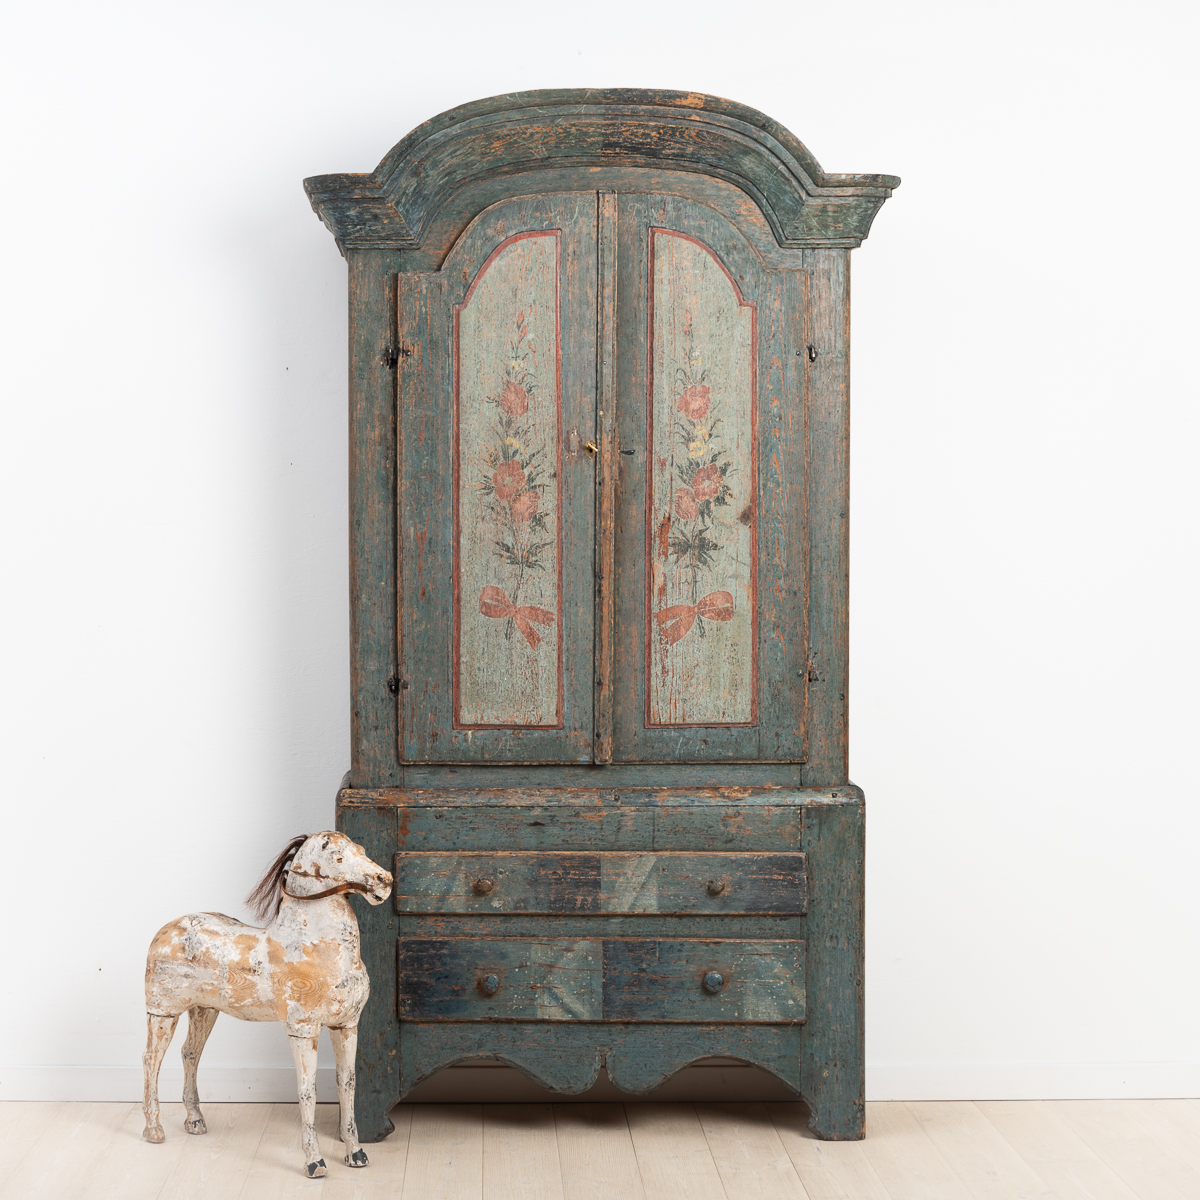 Rococo Cabinet from Jämtland, Northern Sweden